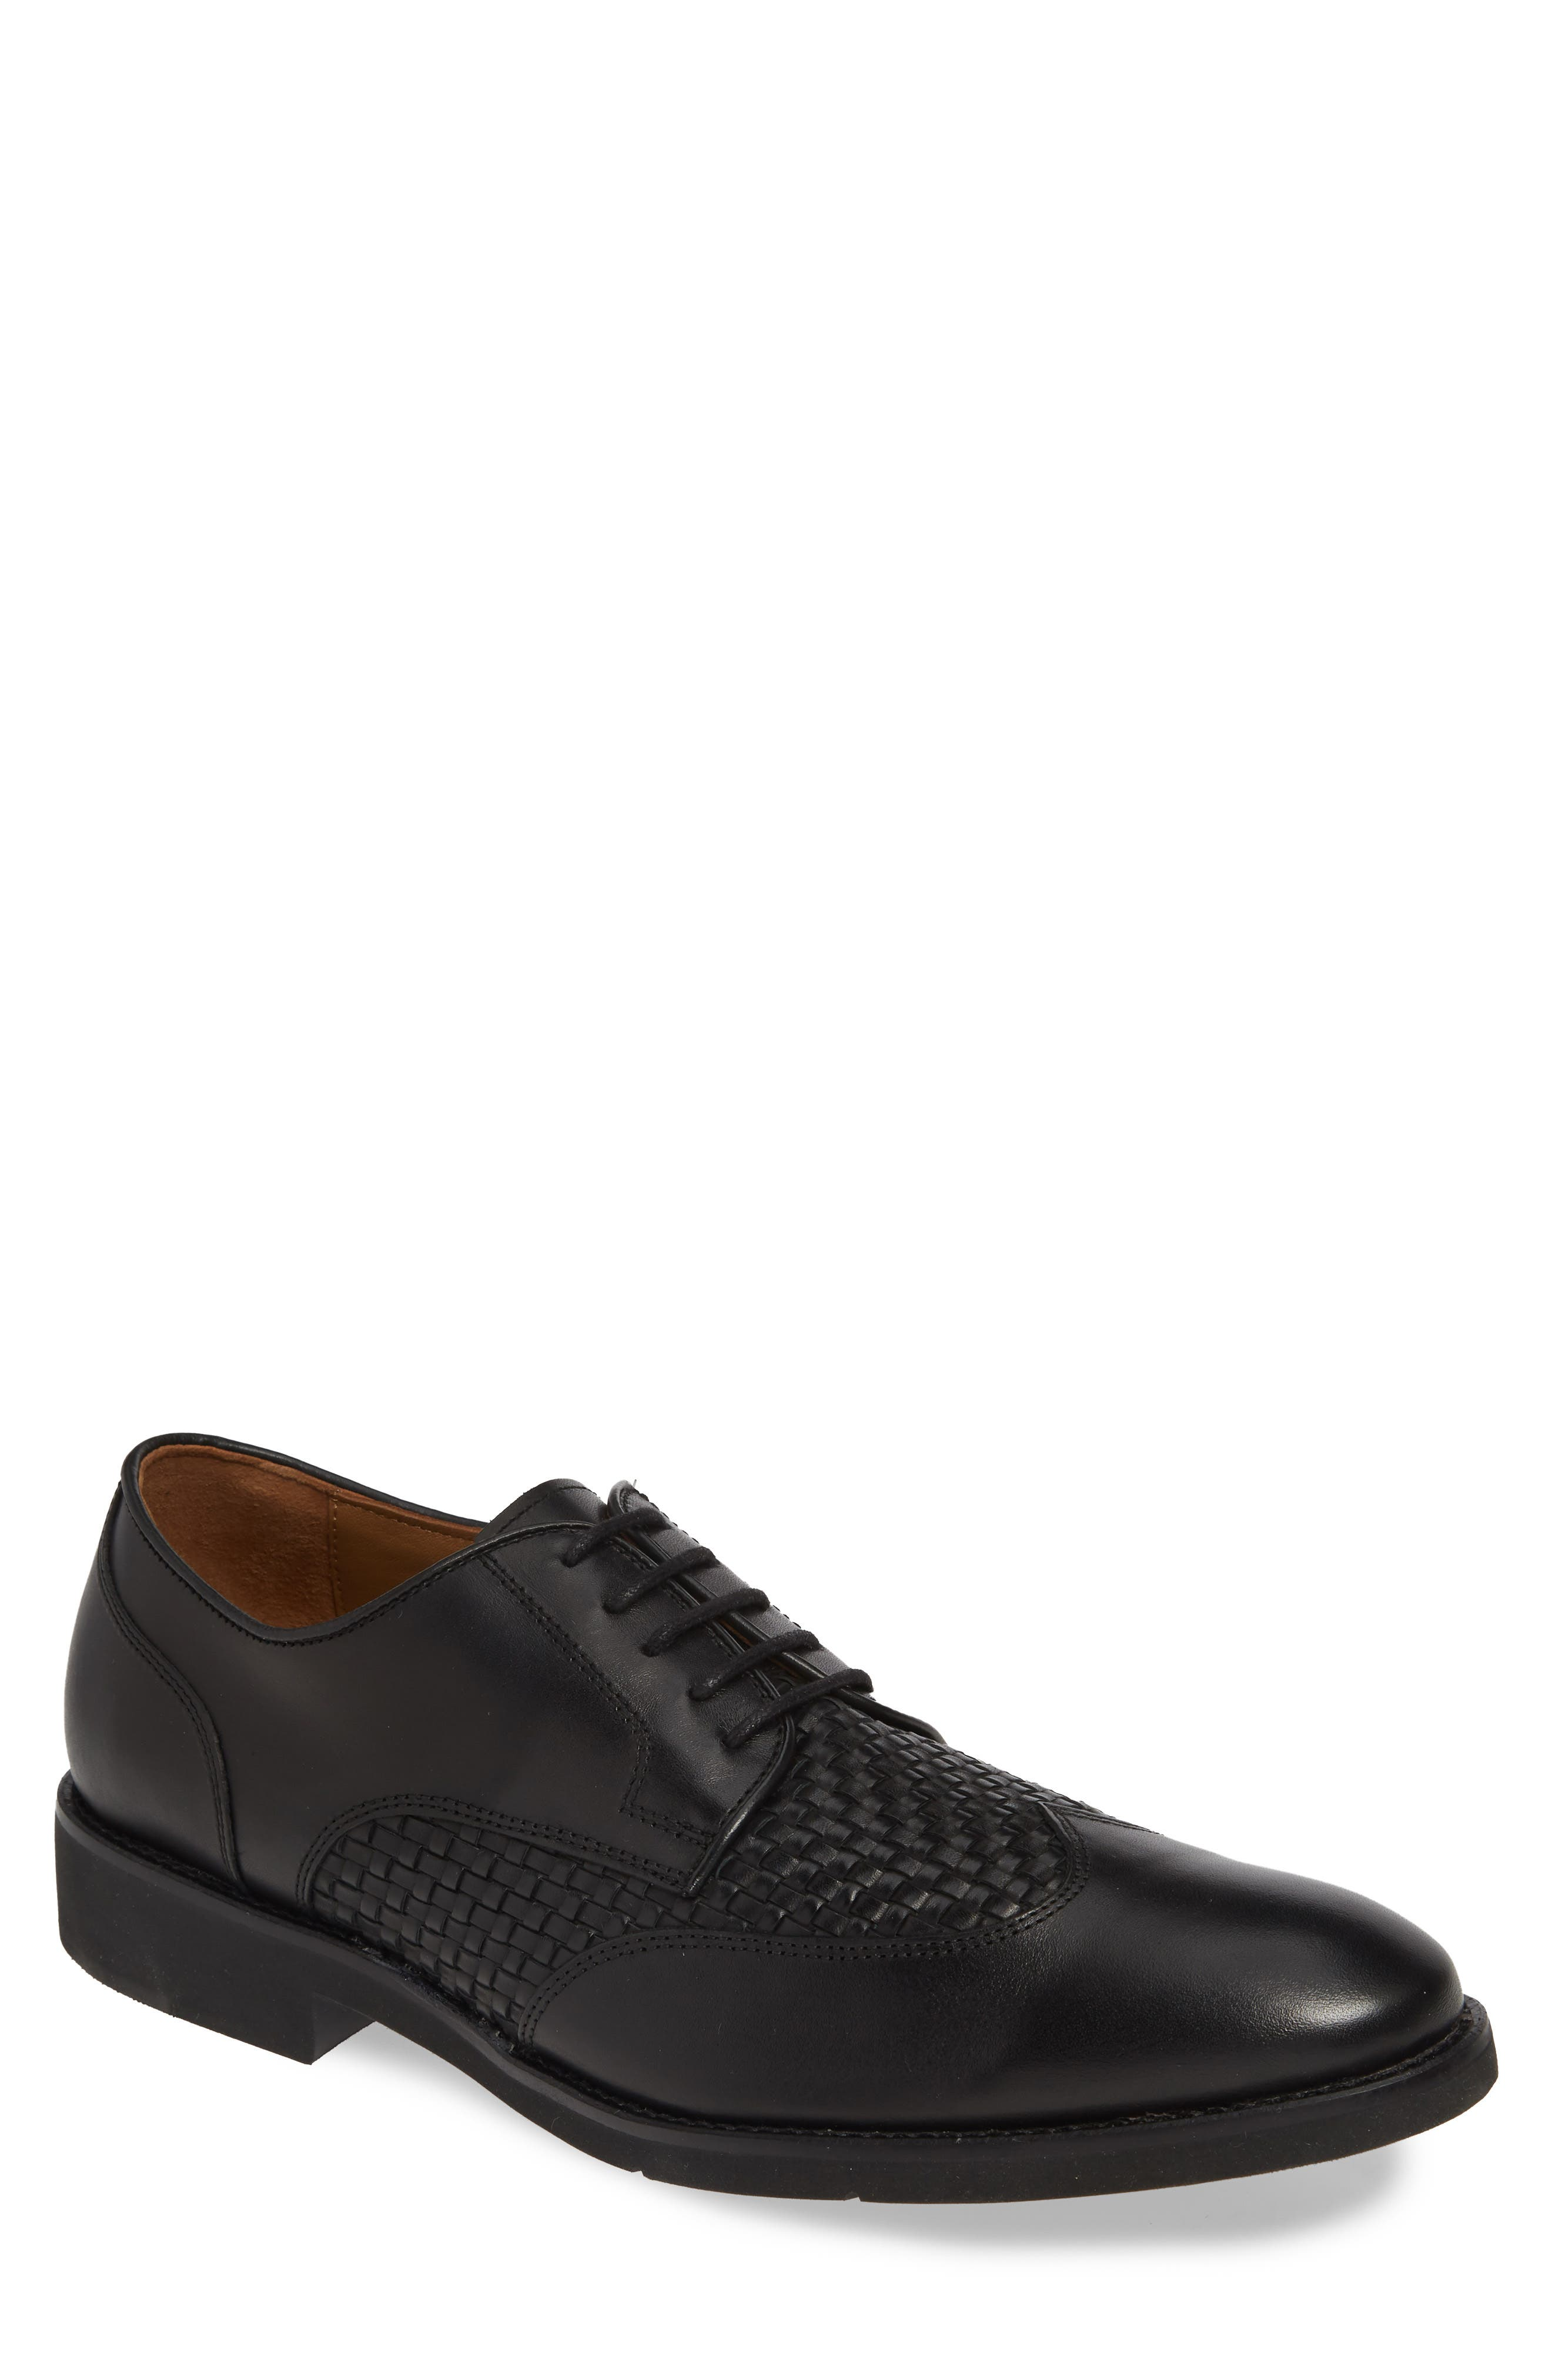 JOHNSTON & MURPHY Carlson Woven Wingtip Derby, Main, color, BLACK LEATHER